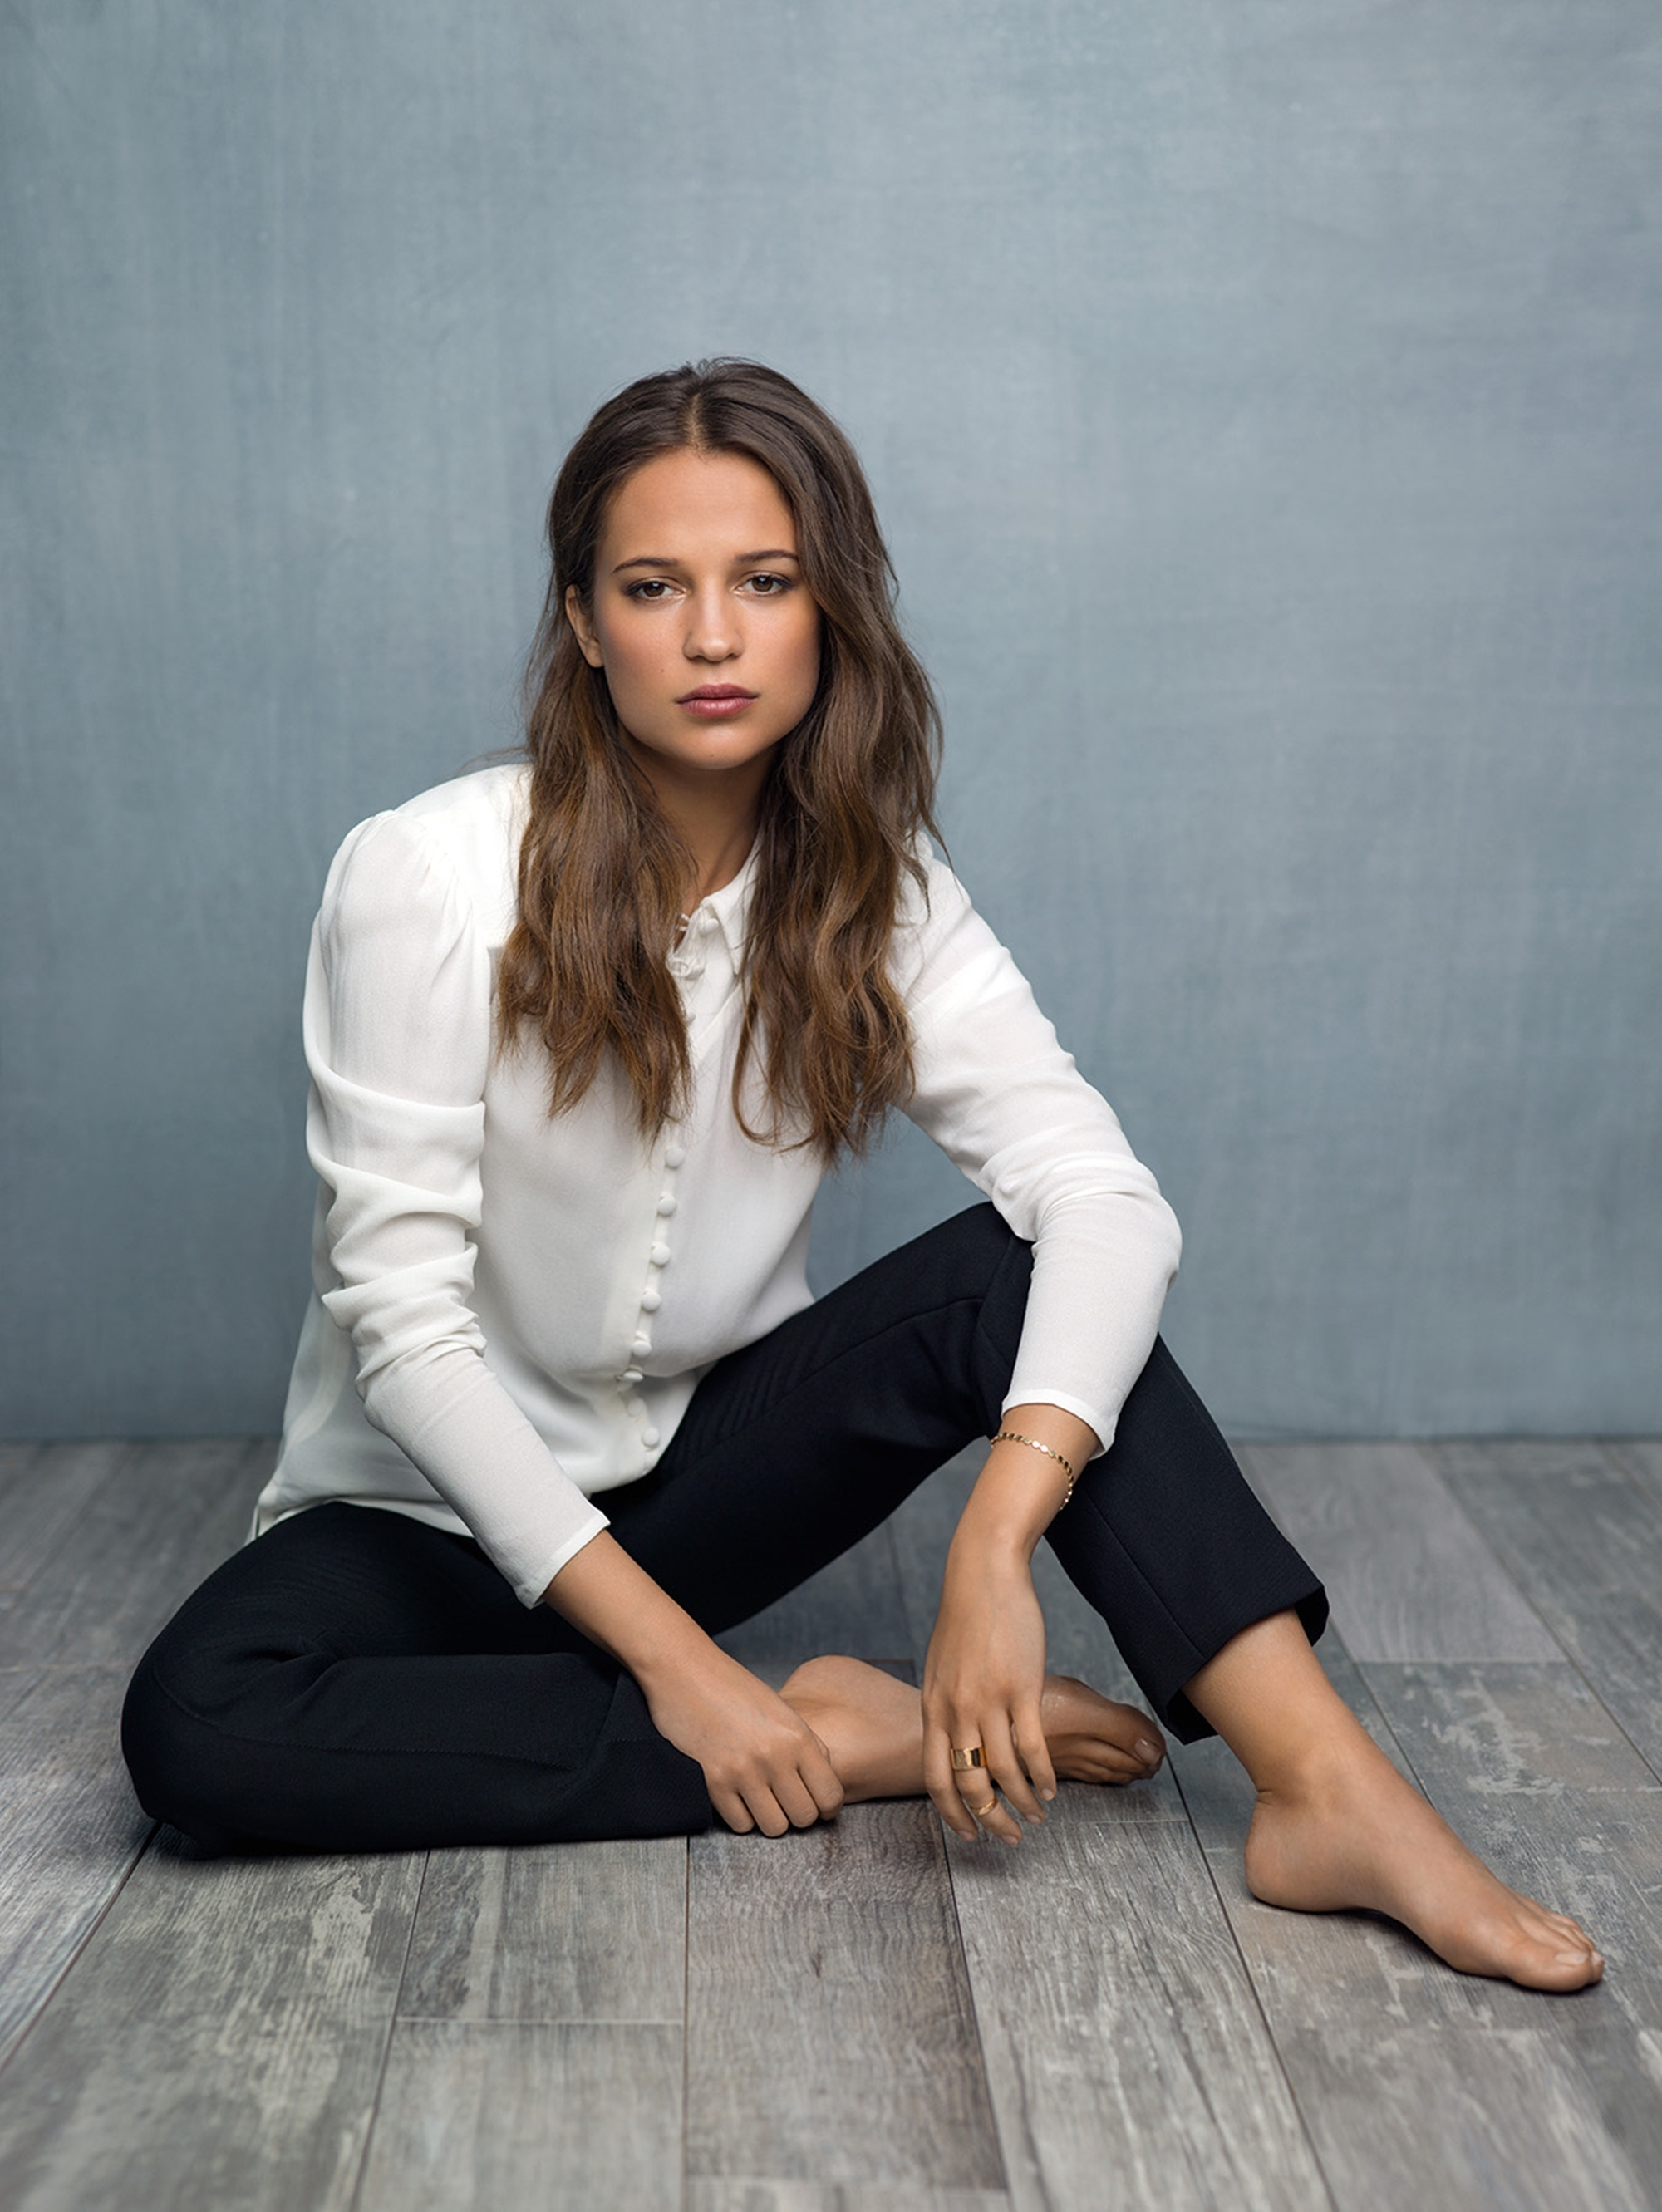 Alicia vikander hot pics